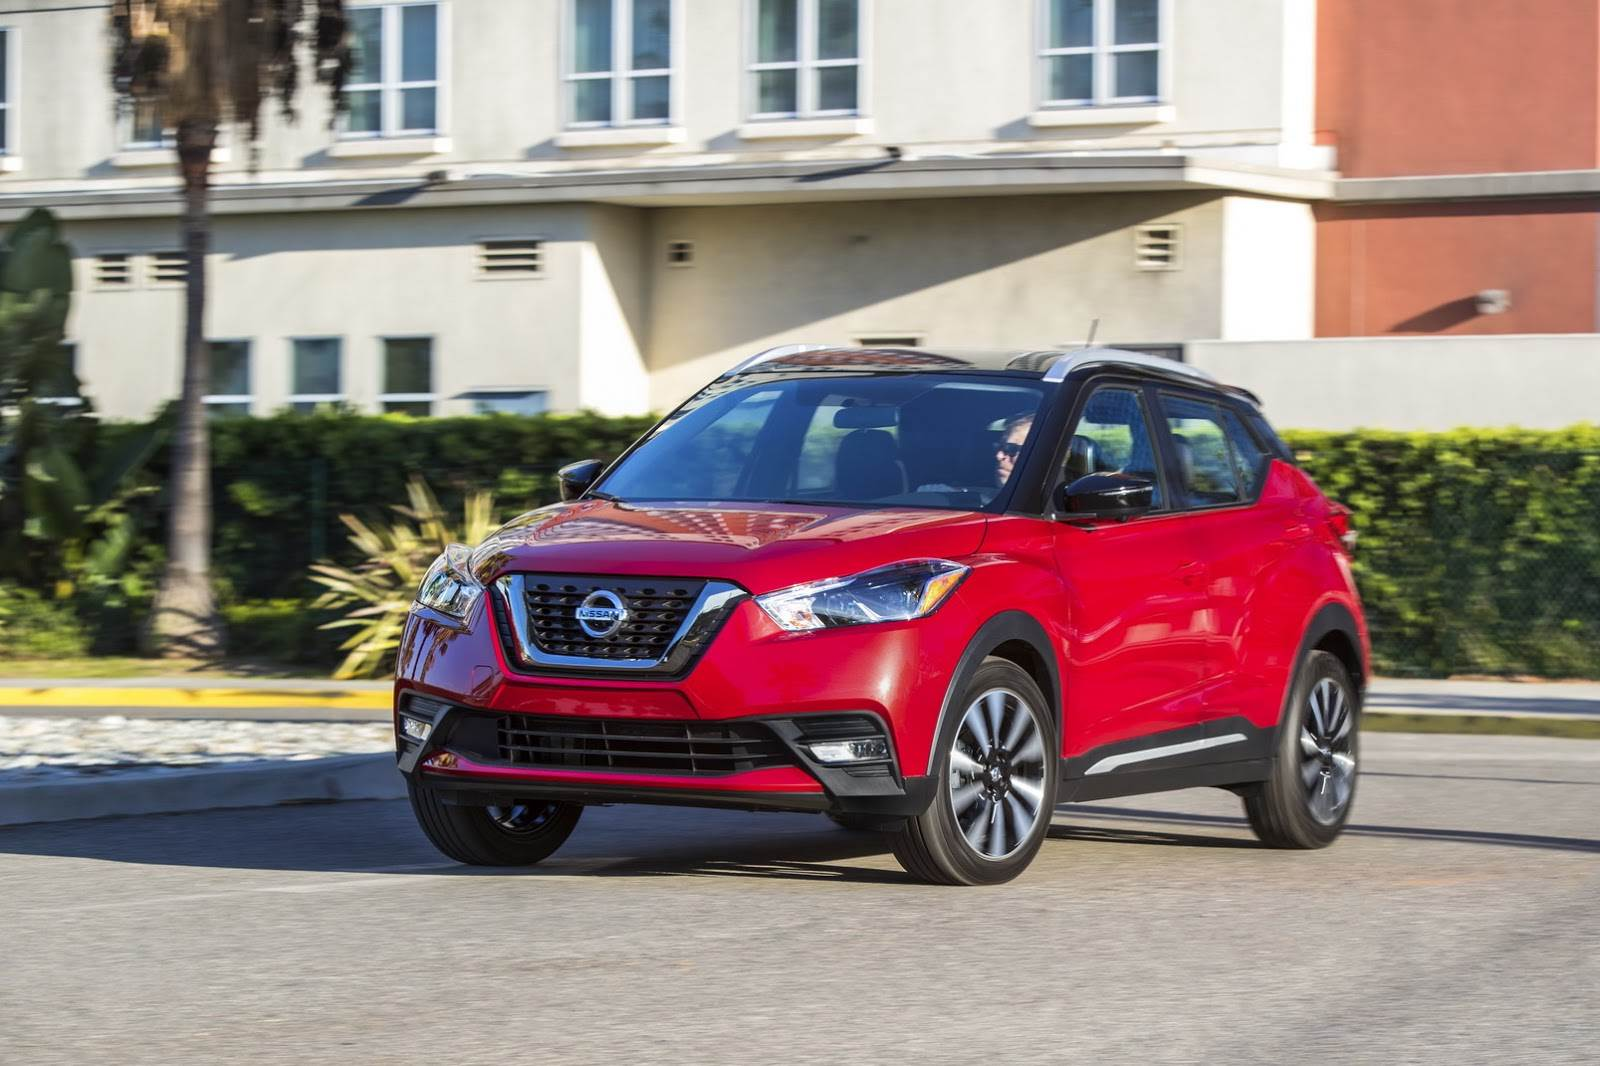 Nissan Kicks (left-hand drive model shown for representation purpose).